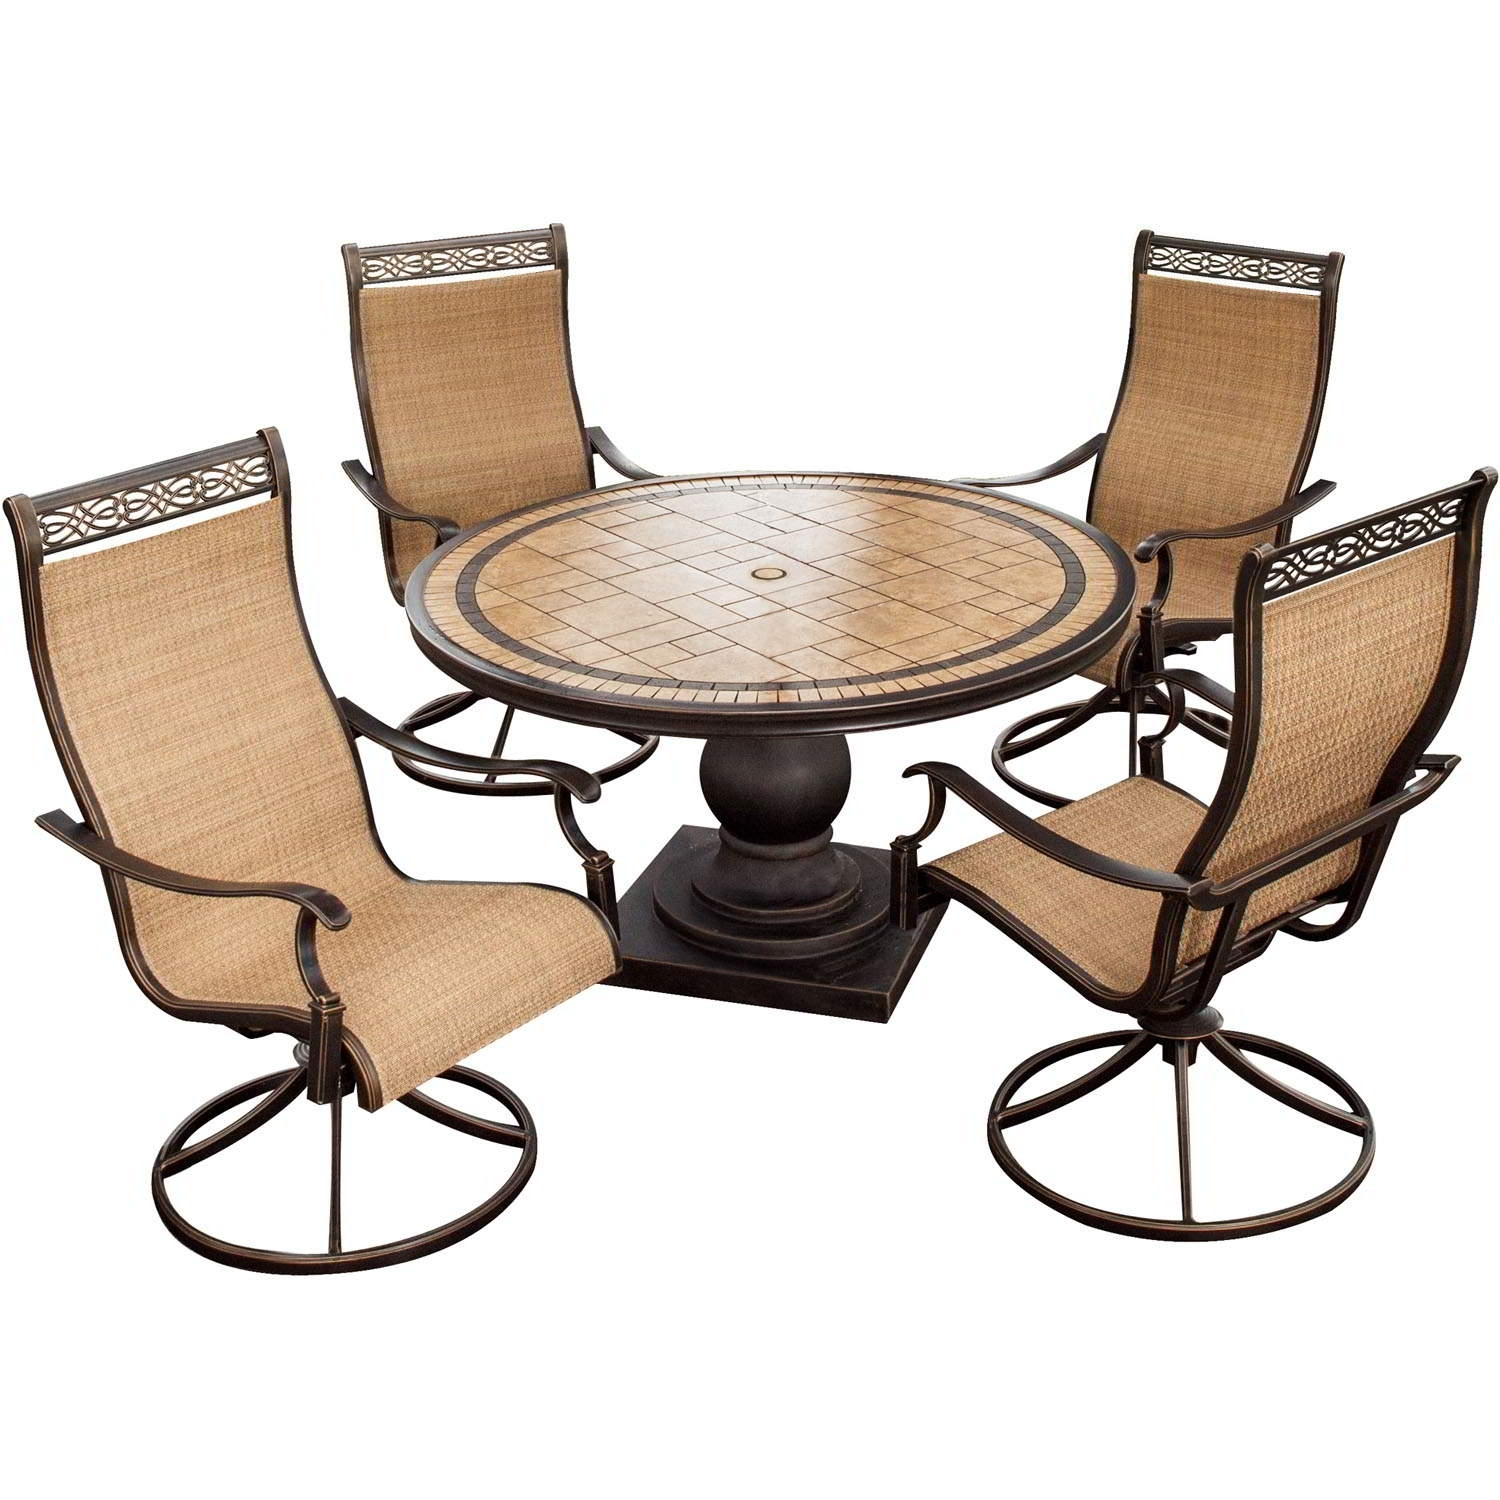 Chair | Rocking Deck Chair Sling Rocker Patio Furniture High Back Pertaining To Patio Sling Rocking Chairs (View 13 of 15)